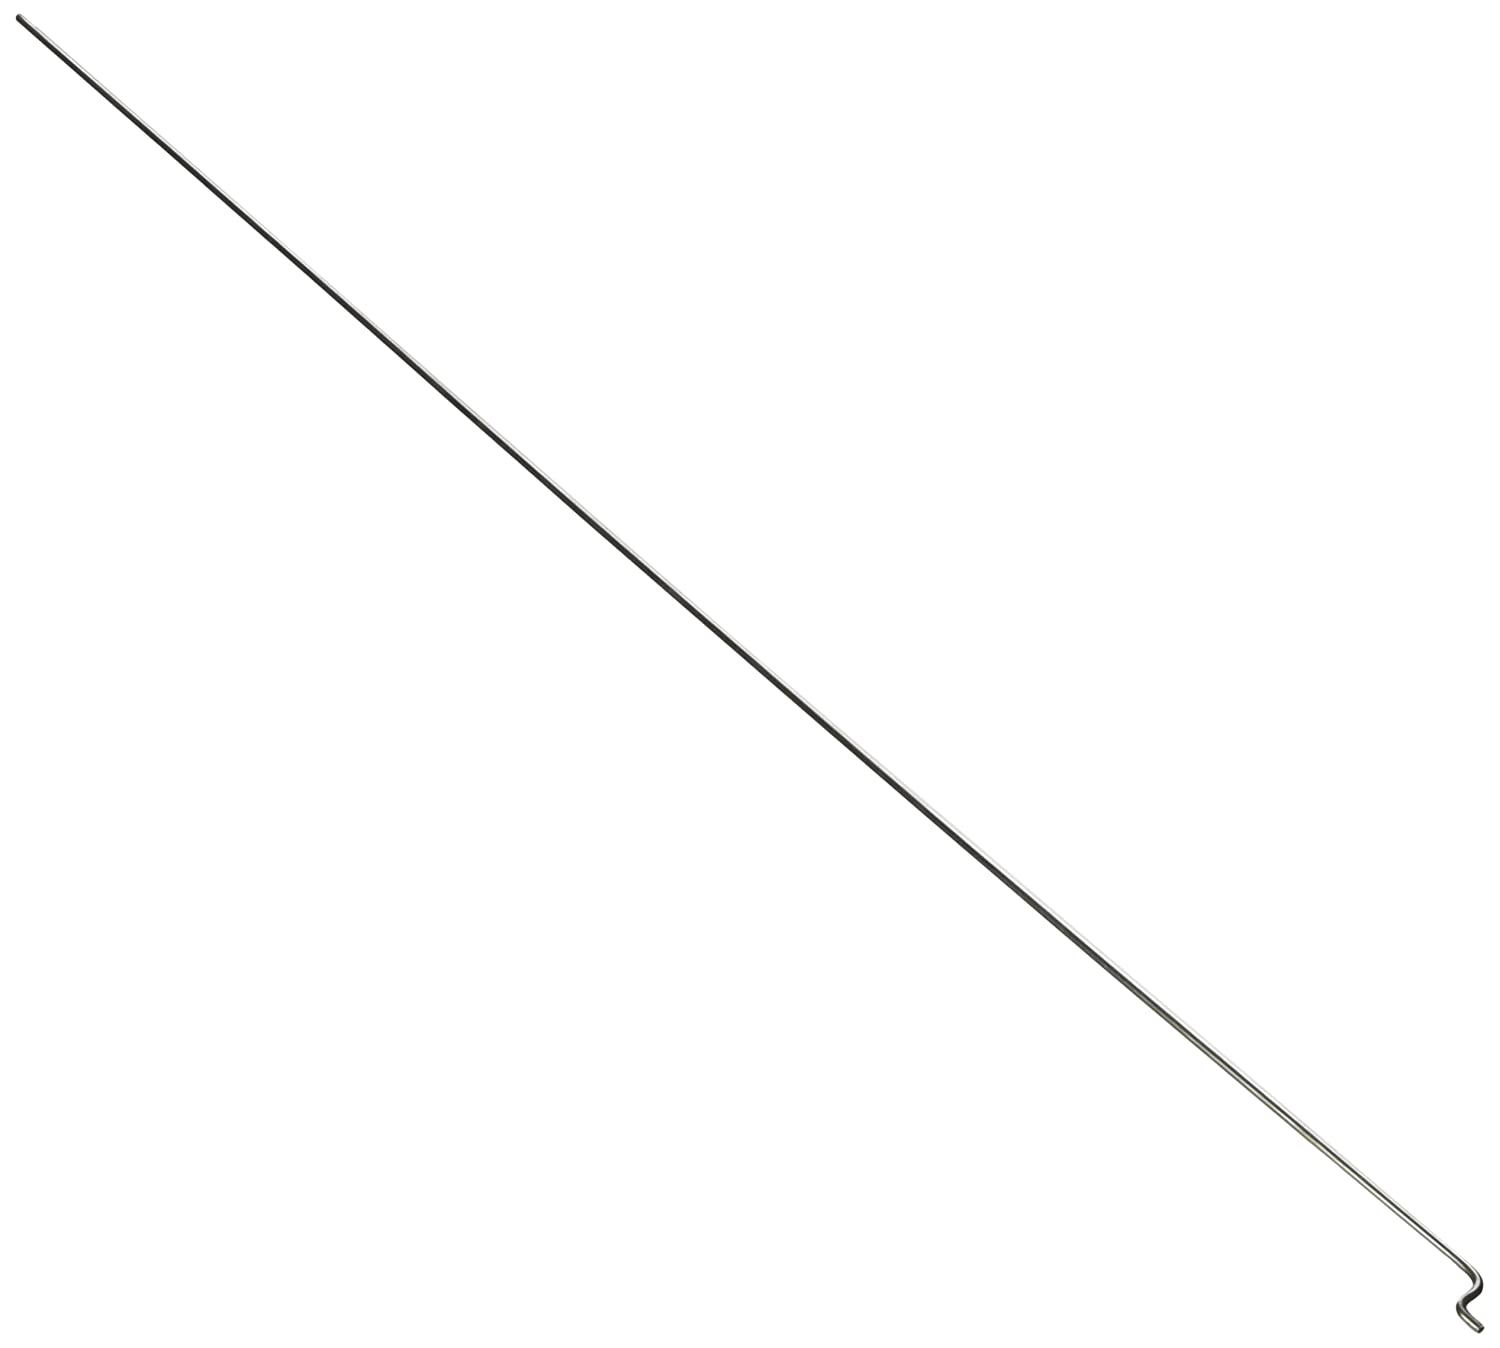 1.5mm Diameter 330mm Long Stainless Steel Push Rods for RC Model Boat Sourcingmap a14061600ux0195